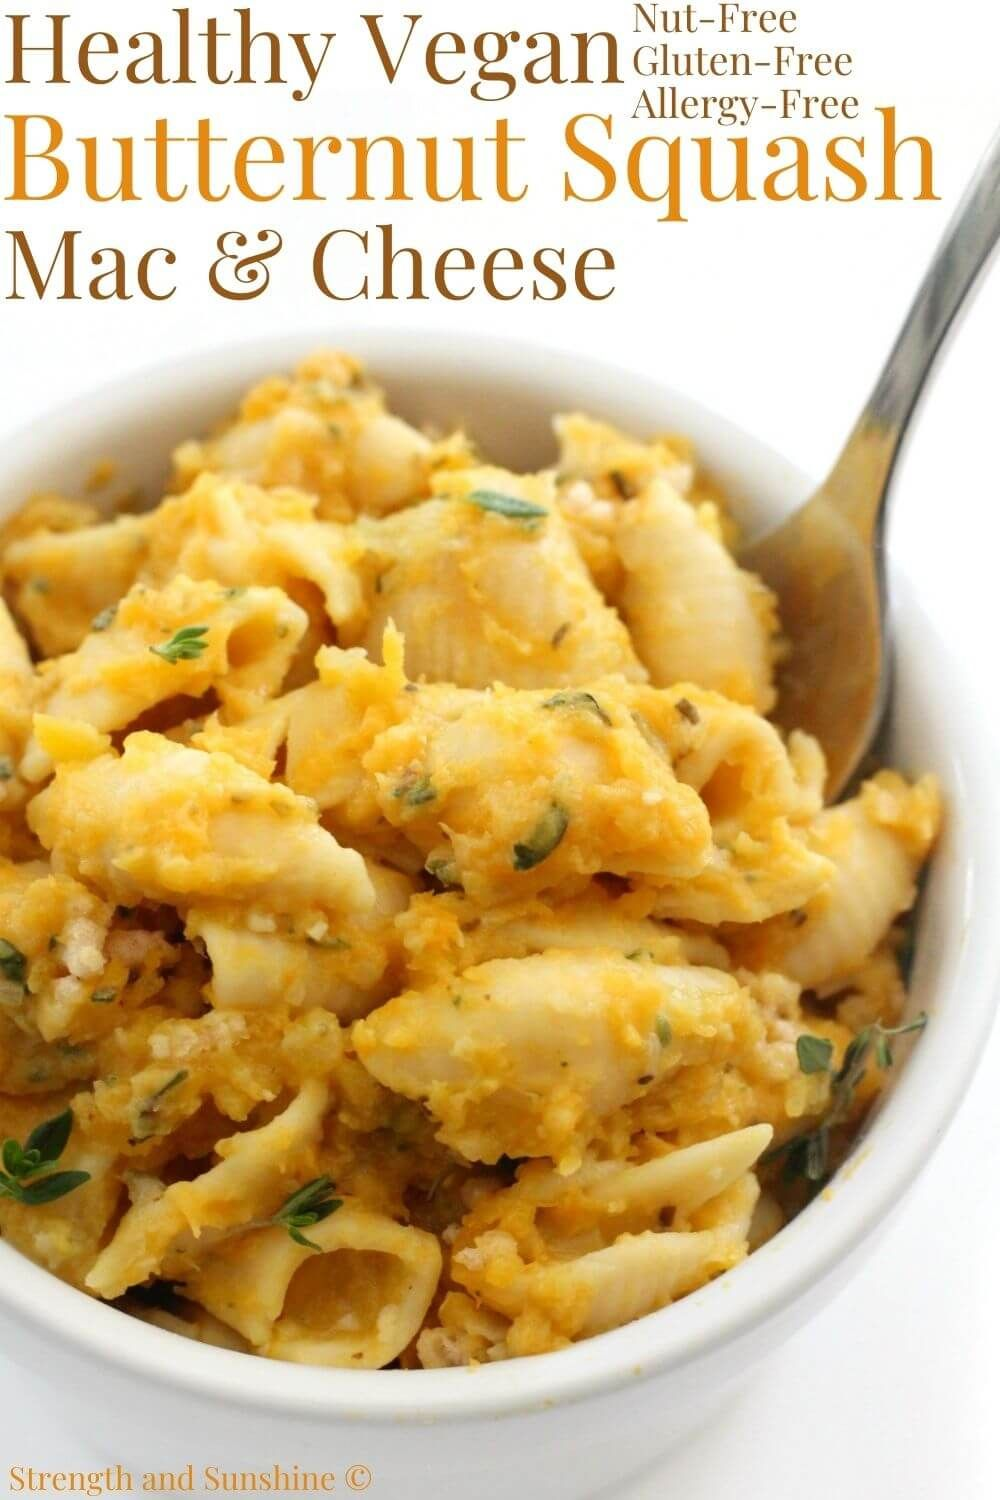 Vegan Butternut Squash Mac And Cheese Gluten Free Allergy Free Recipe In 2020 Recipes Butternut Squash Mac And Cheese How To Cook Pasta